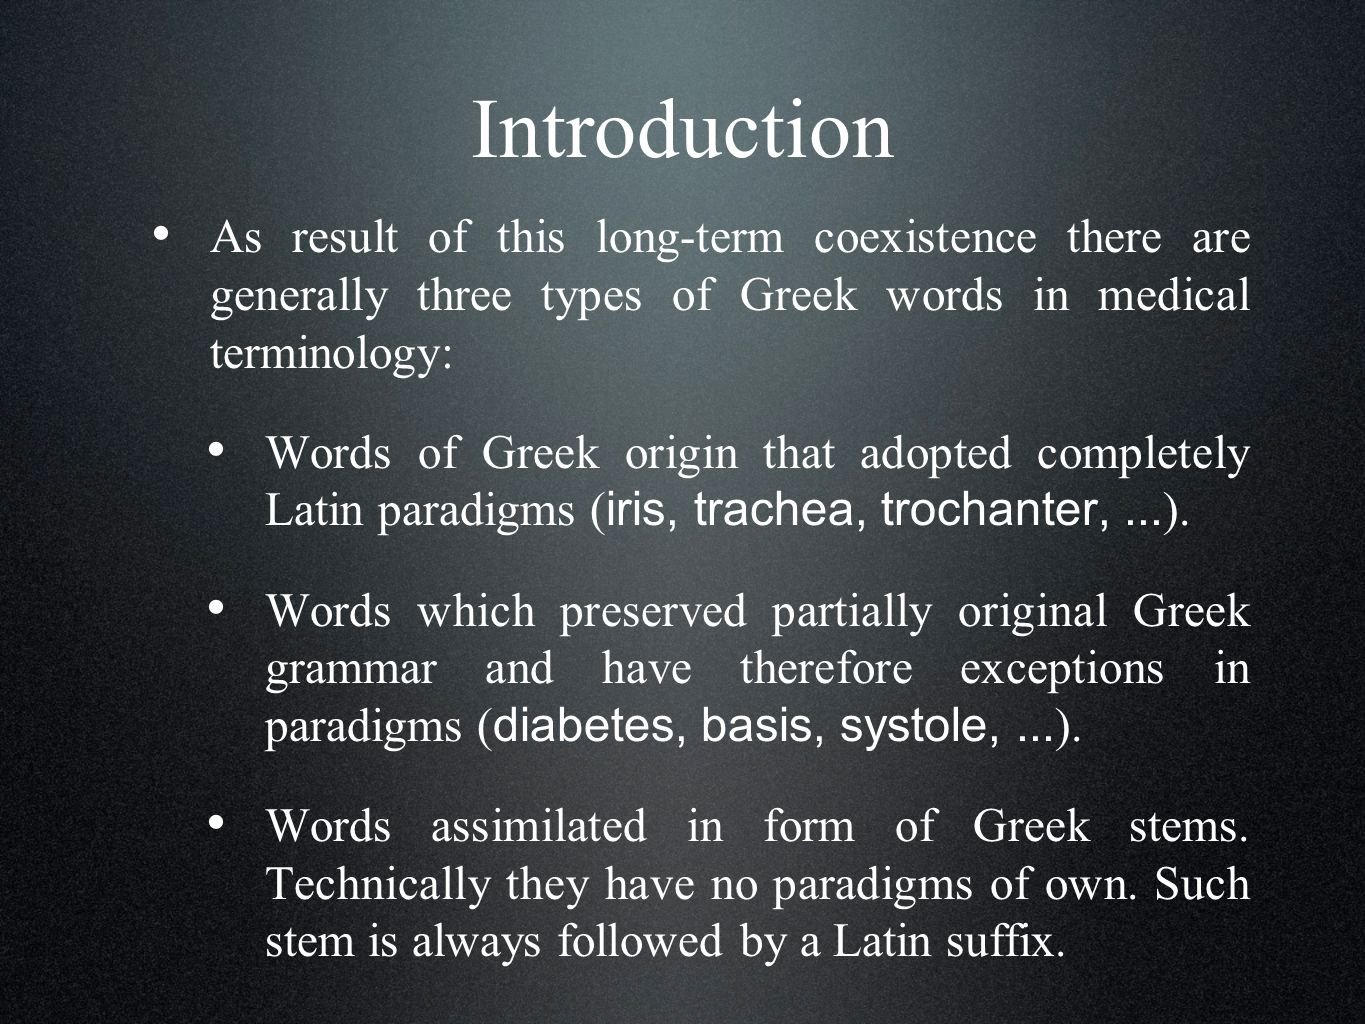 Group 1 Greek words following the Latin paradigms